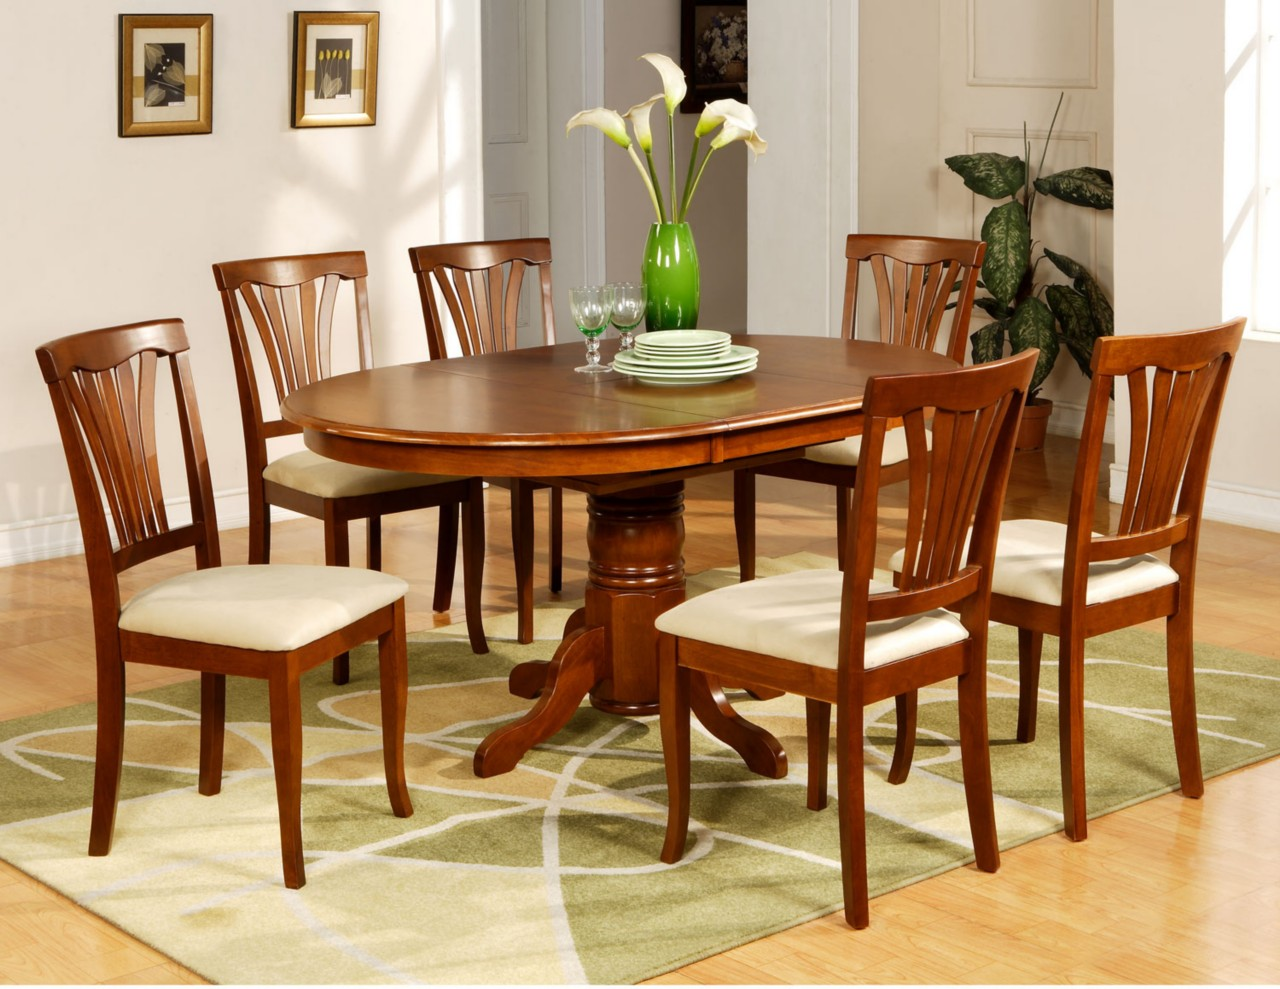 7 pc avon oval dinette kitchen dining room table with 6 for Kitchen dining sets on sale